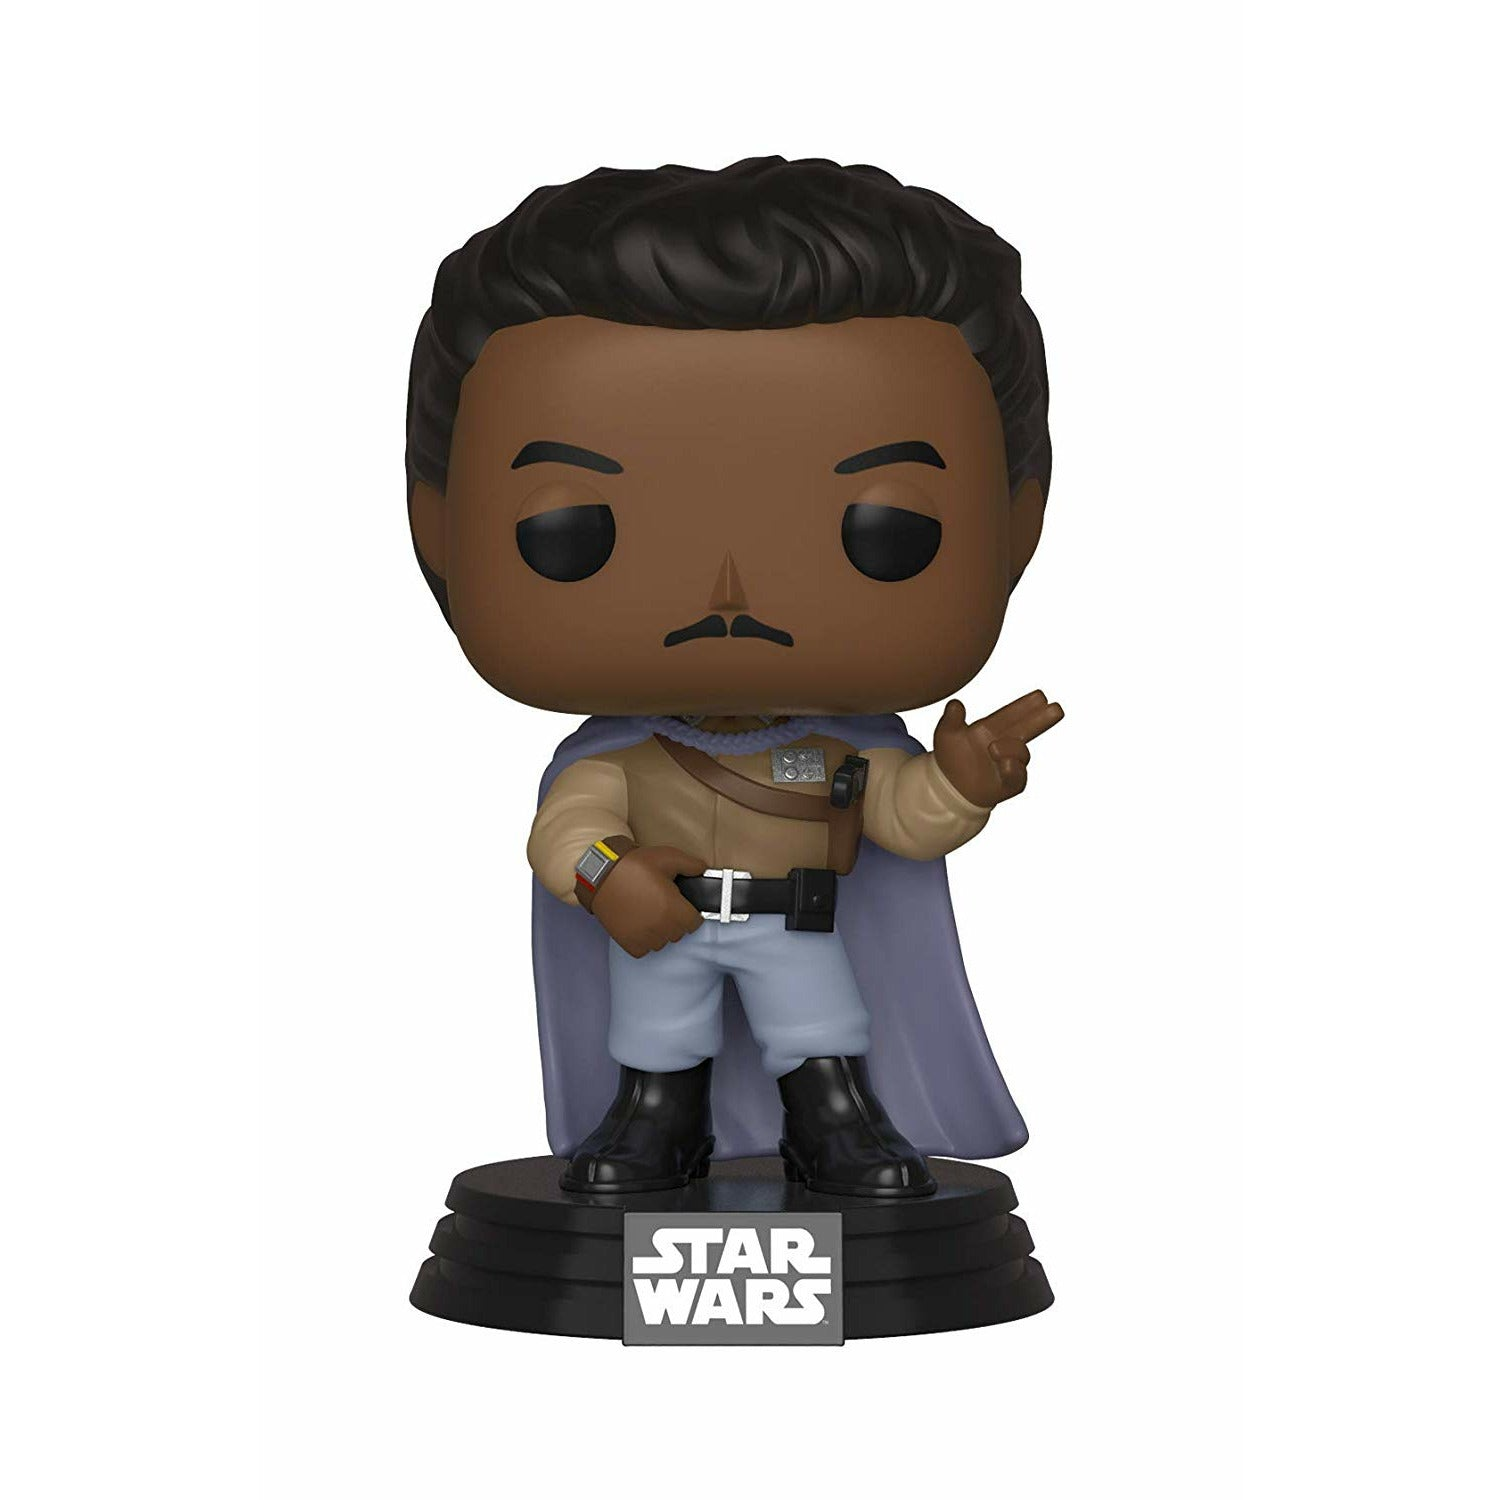 Star Wars Lando Calrissian Bobblehead Pop! Vinyl Figure